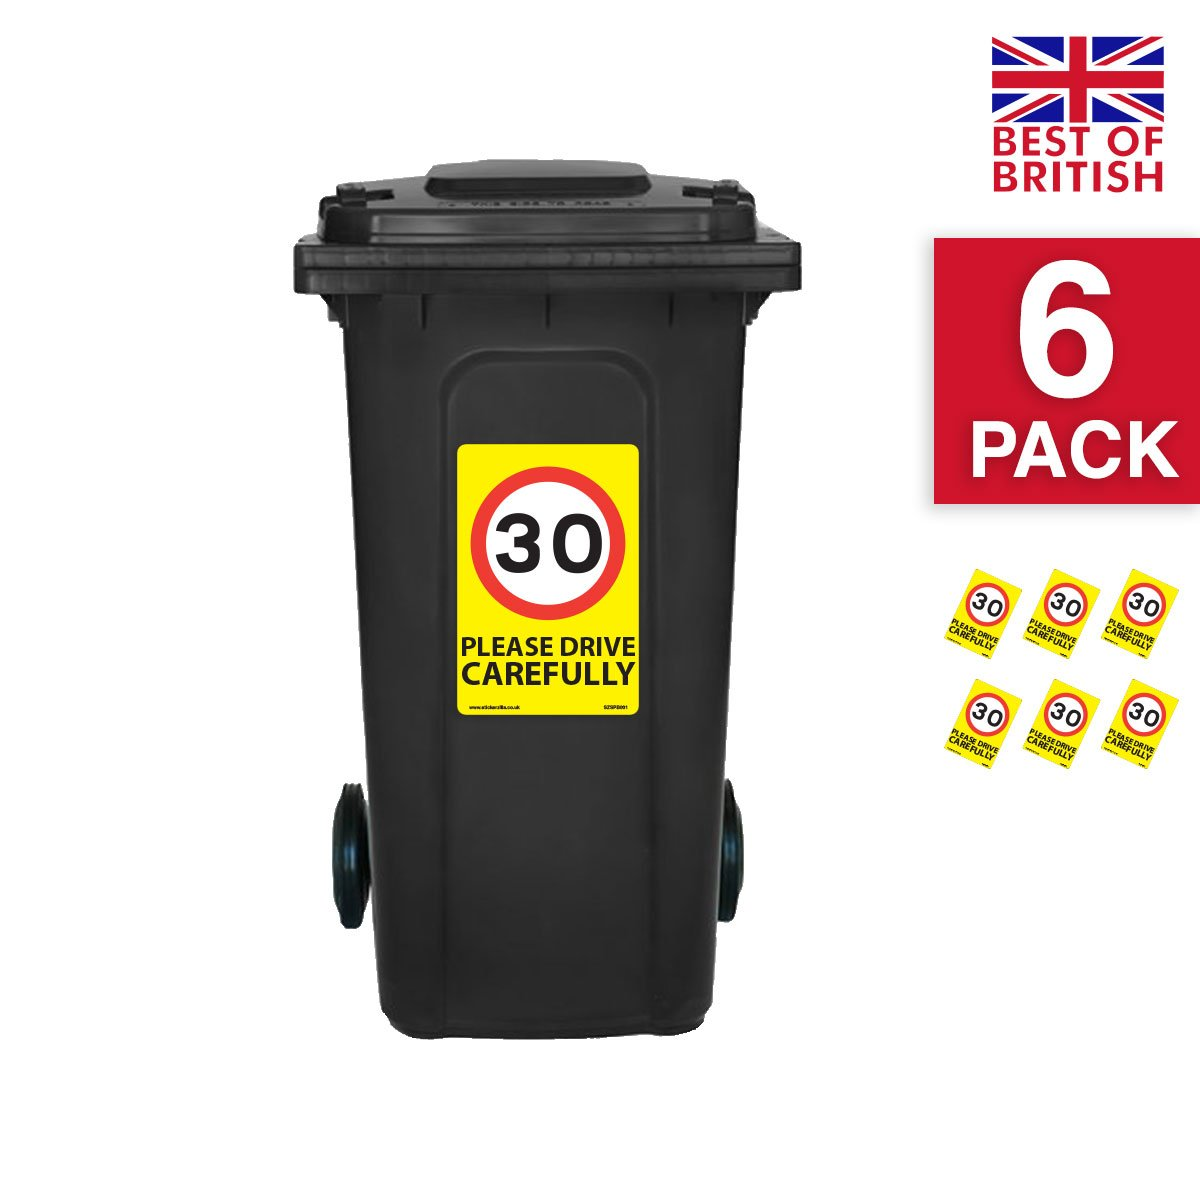 30 Mph Speed Signs [6 X Pack] - A4 Vinyl Stickers, Yellow Background Ideal For Wheelie Bins Stickerzilla